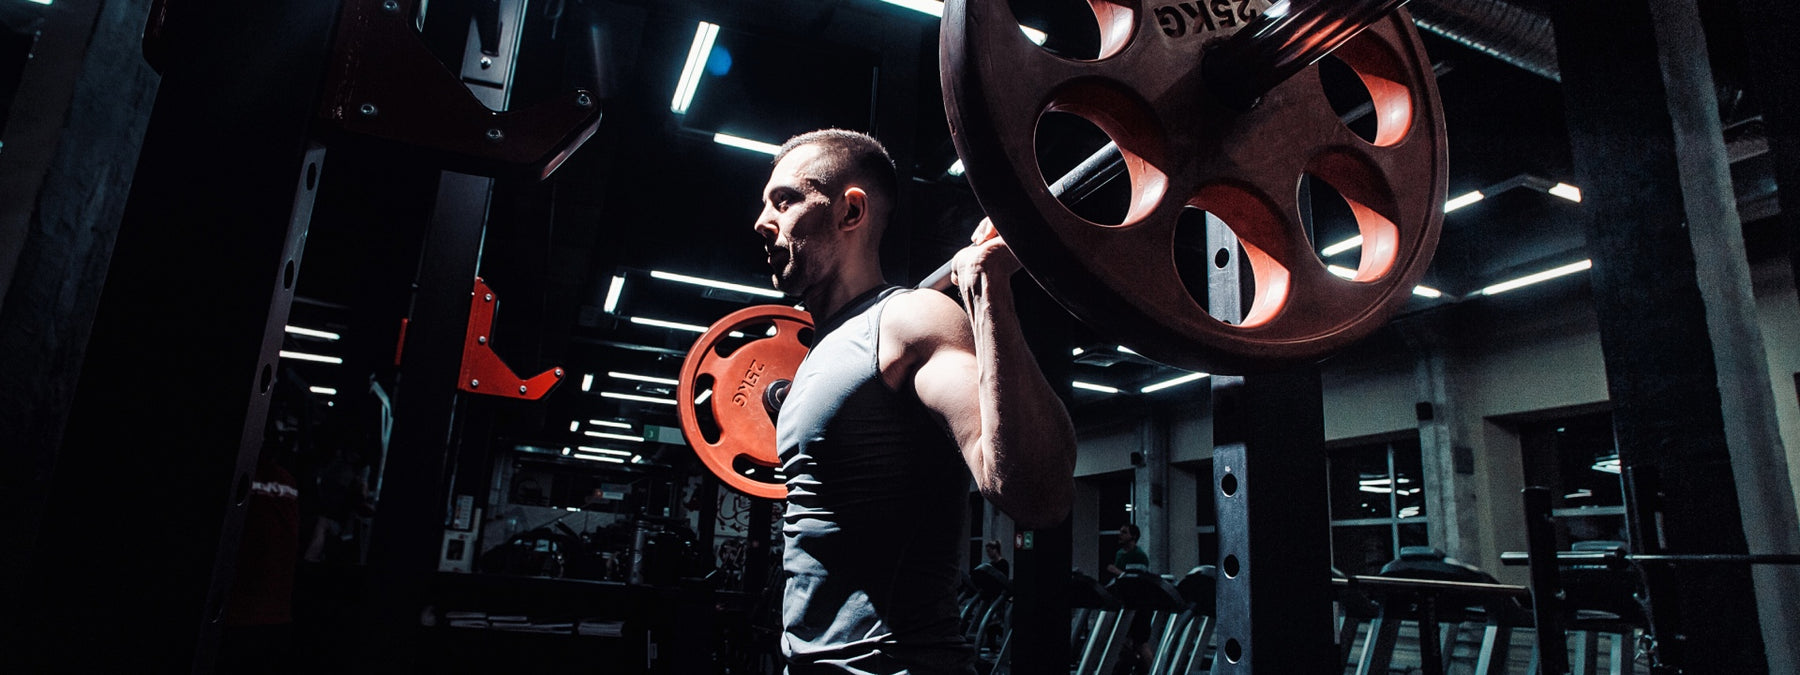 4 Reasons Why You Shouldn't Barbell Back Squat